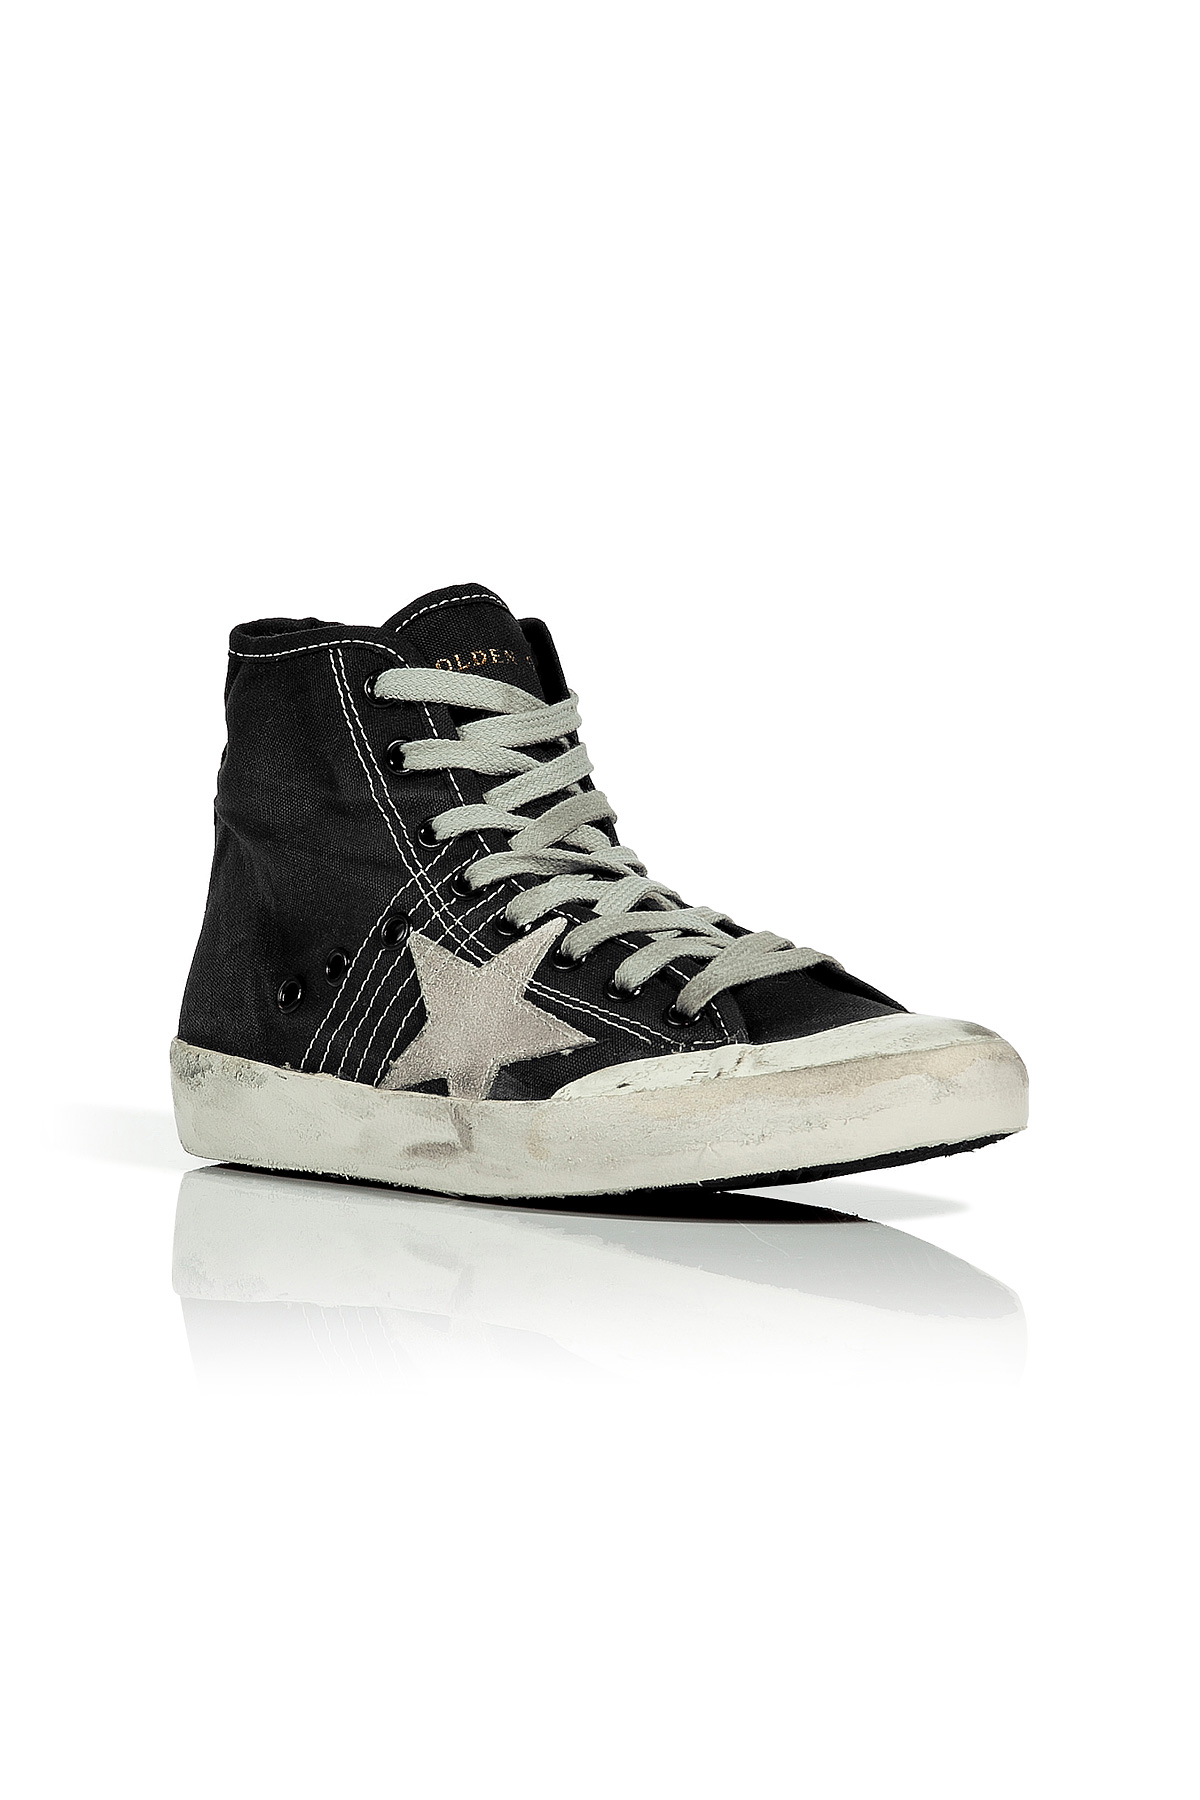 golden goose deluxe brand black pen star francy sneakers in black lyst. Black Bedroom Furniture Sets. Home Design Ideas